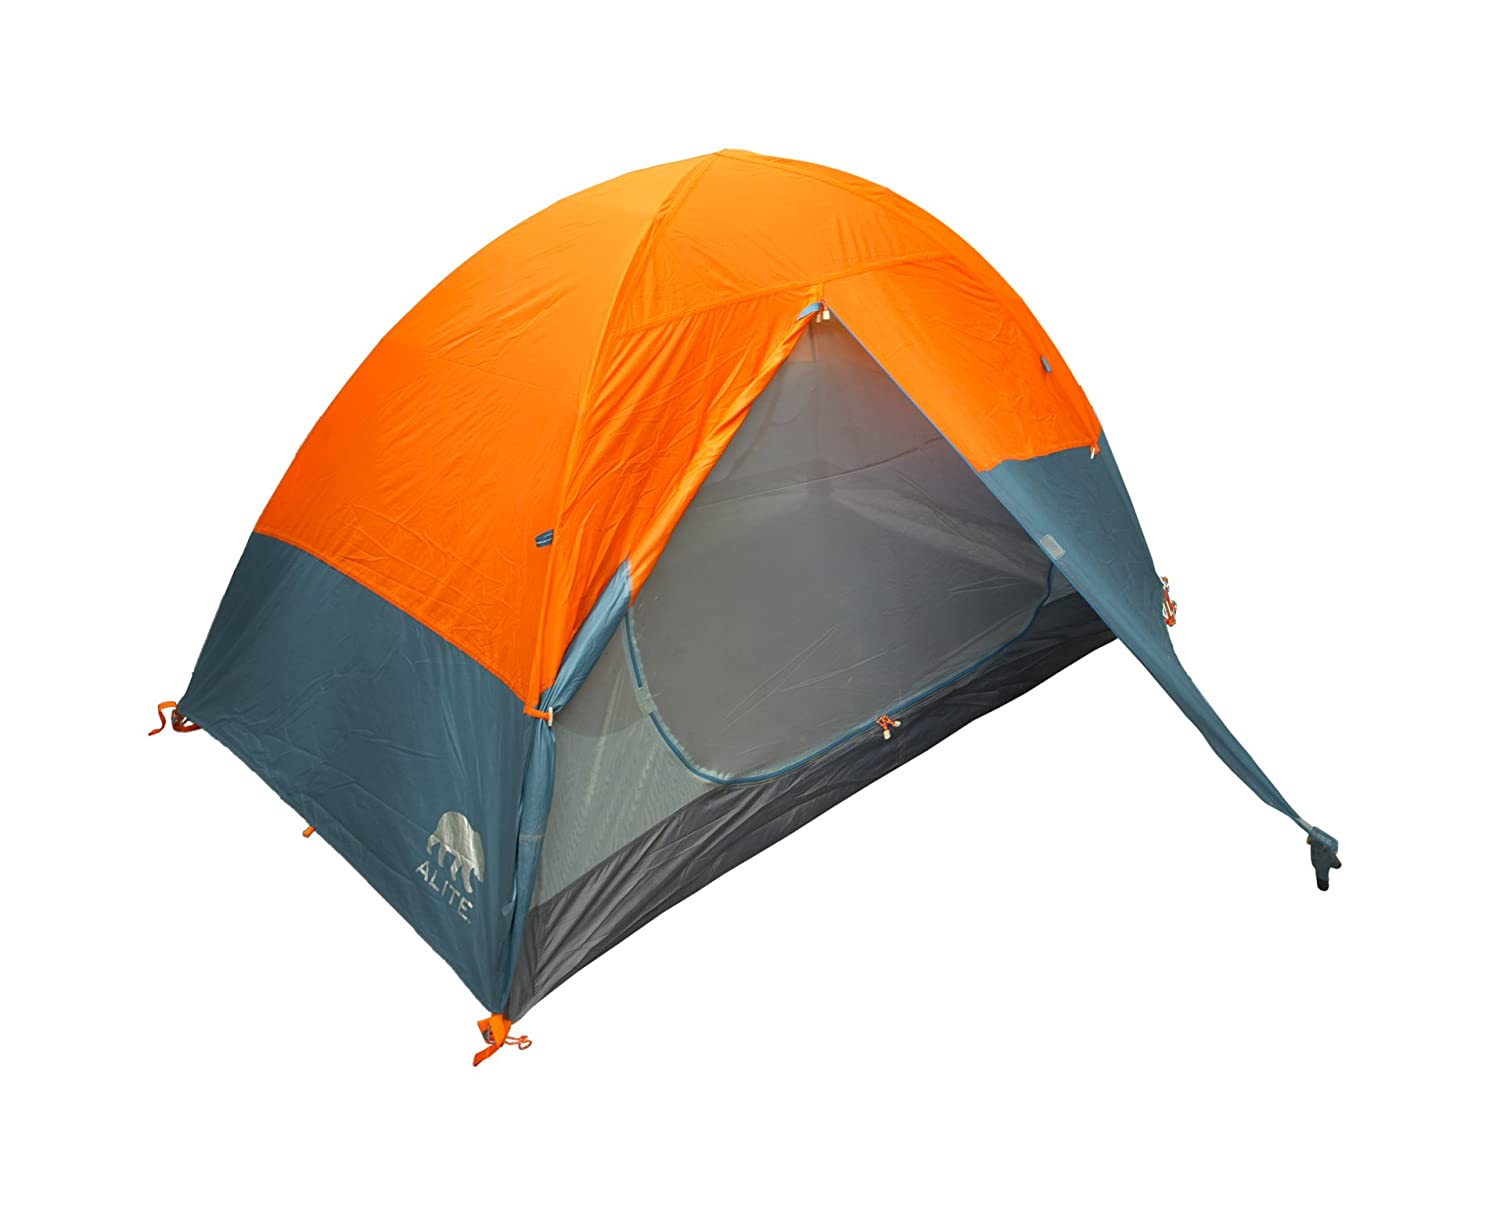 sc 1 st  Amazon.com & Amazon.com : Alite Designs Murphy Tent - 2 Person : Sports u0026 Outdoors